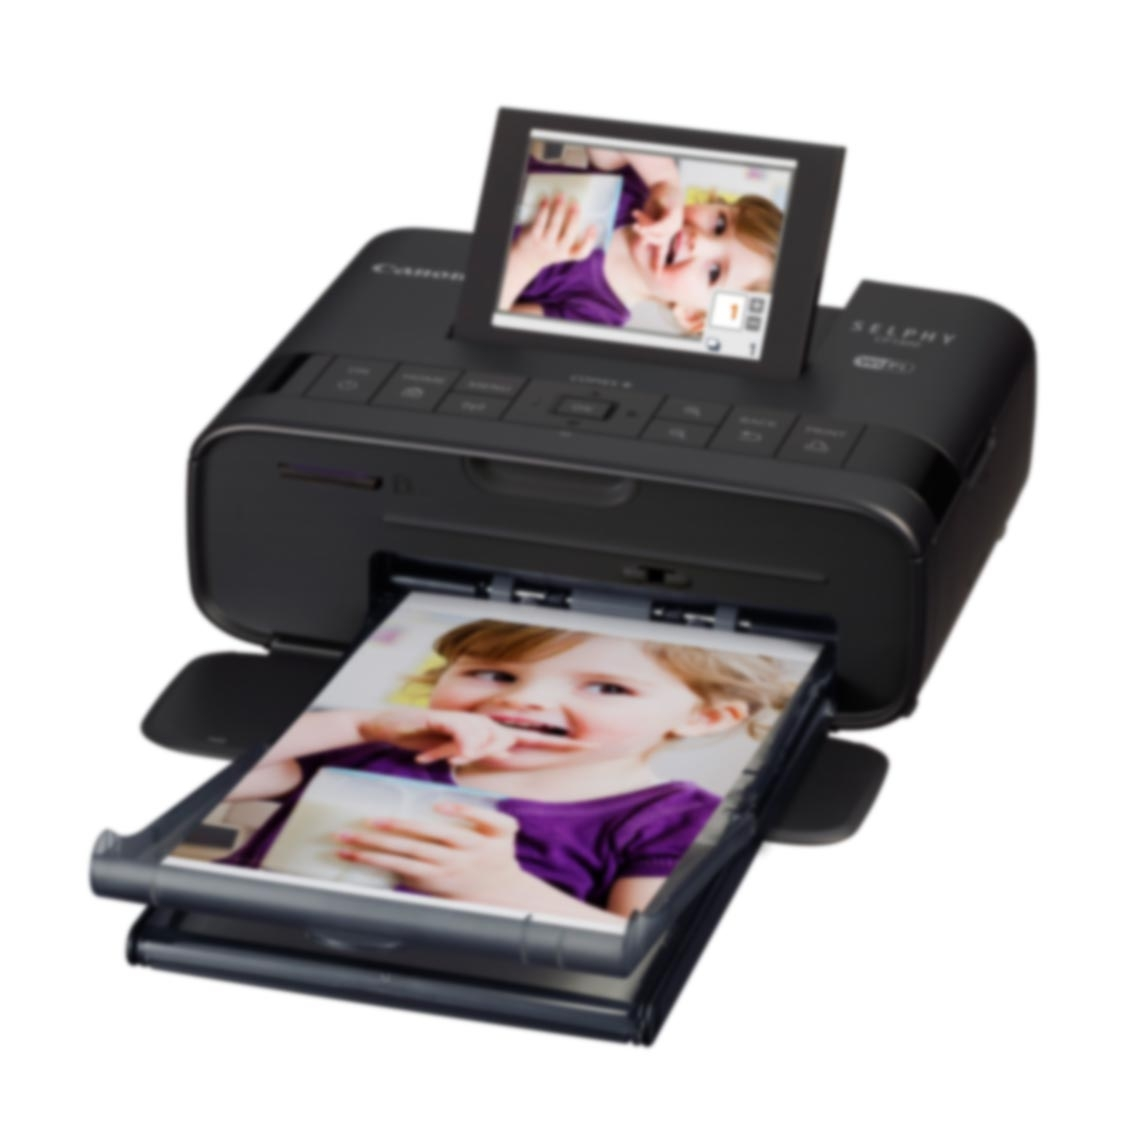 Canon Selphy CP1300 Printer (black)